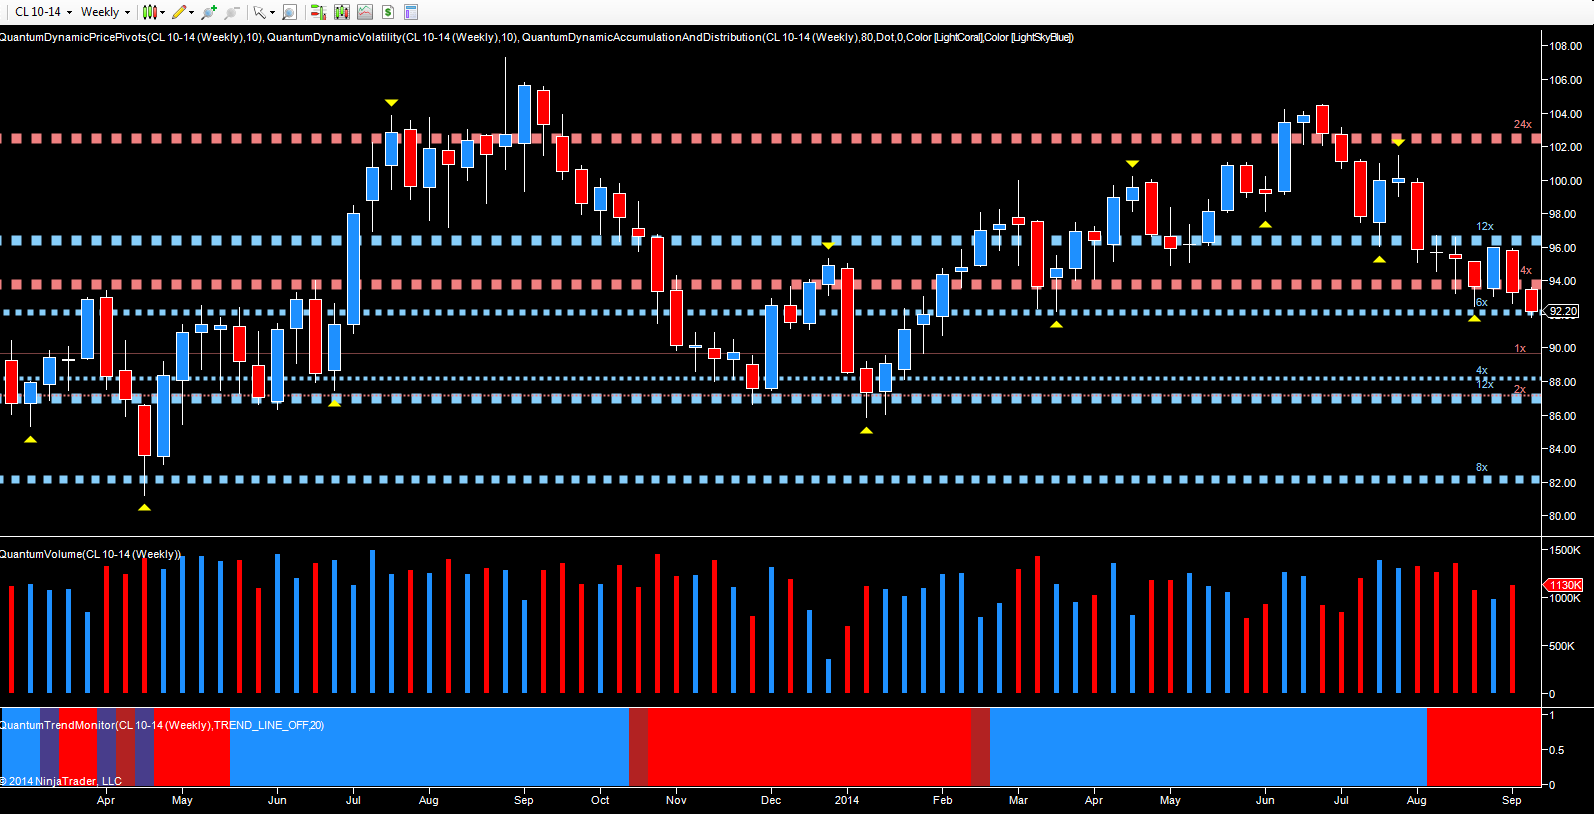 October WTI oil futures - weekly chart